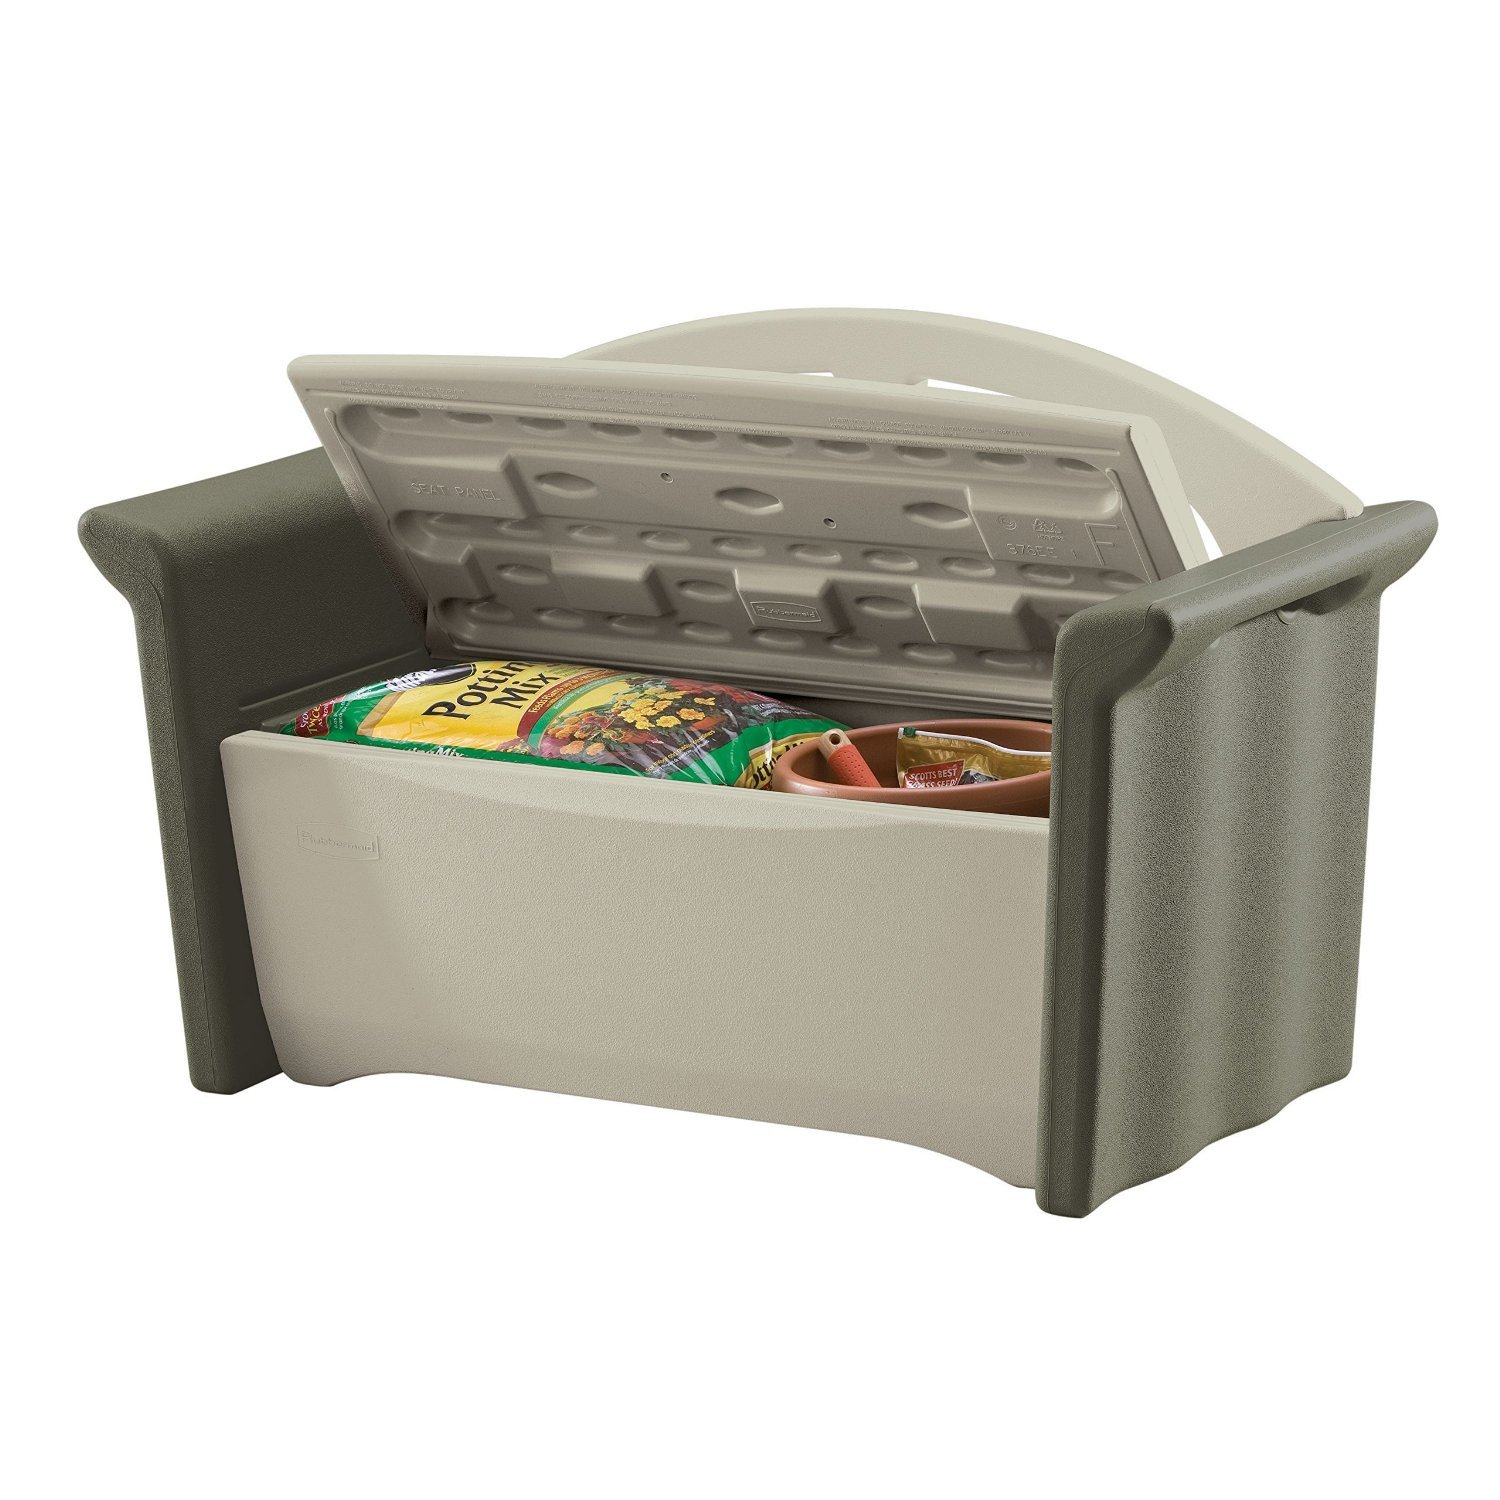 Amazon.com : Rubbermaid Outdoor Patio Storage Bench, 4 Cu. Ft.,  Olive/Sandstone (FG376401OLVSS) : Deck Boxes : Garden U0026 Outdoor